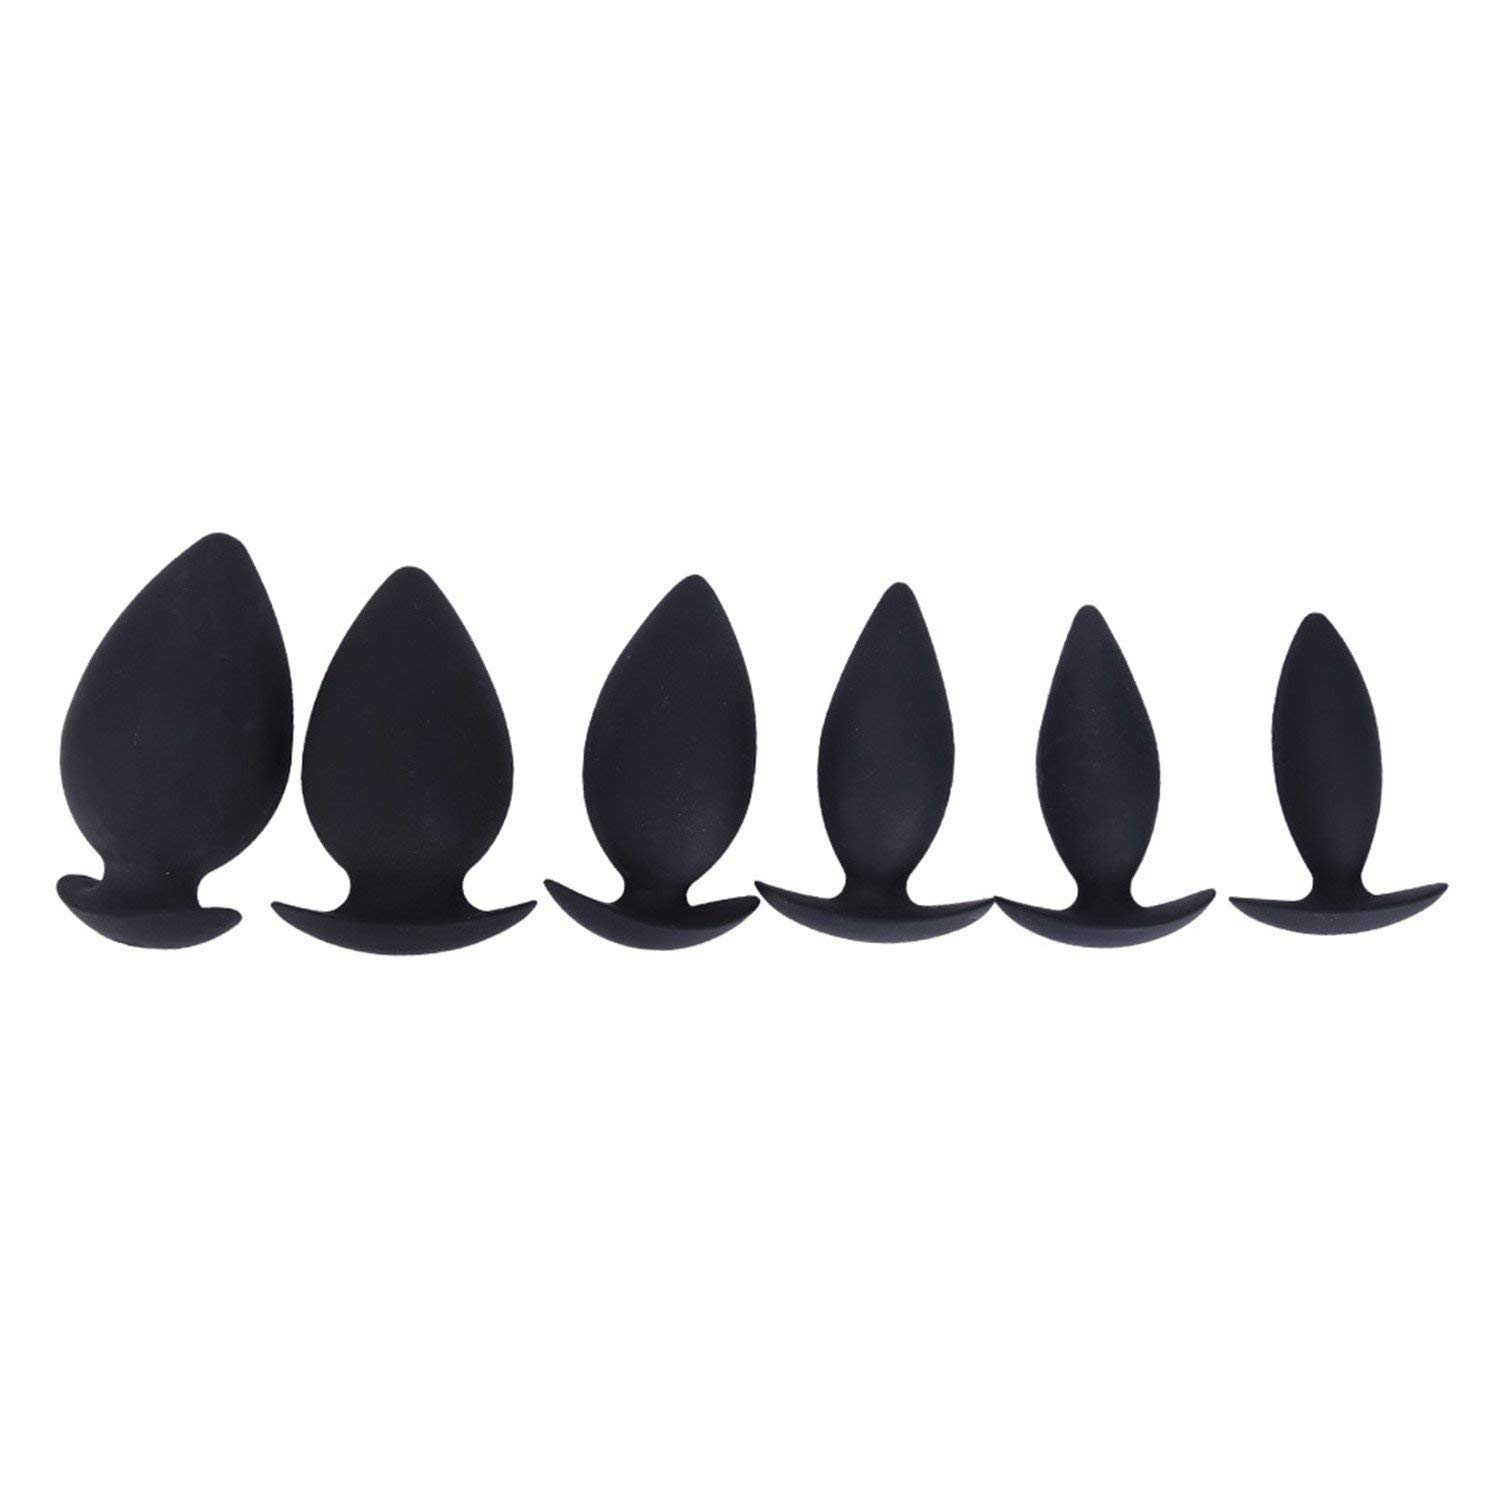 Sex Sweet Men and Women 6 Sizes Silicone Anal Plug Butt Plug Anal Dilator Erotic Toys Adult Sex Toys for Men and Women Gay Anal Massage Vibrating 7